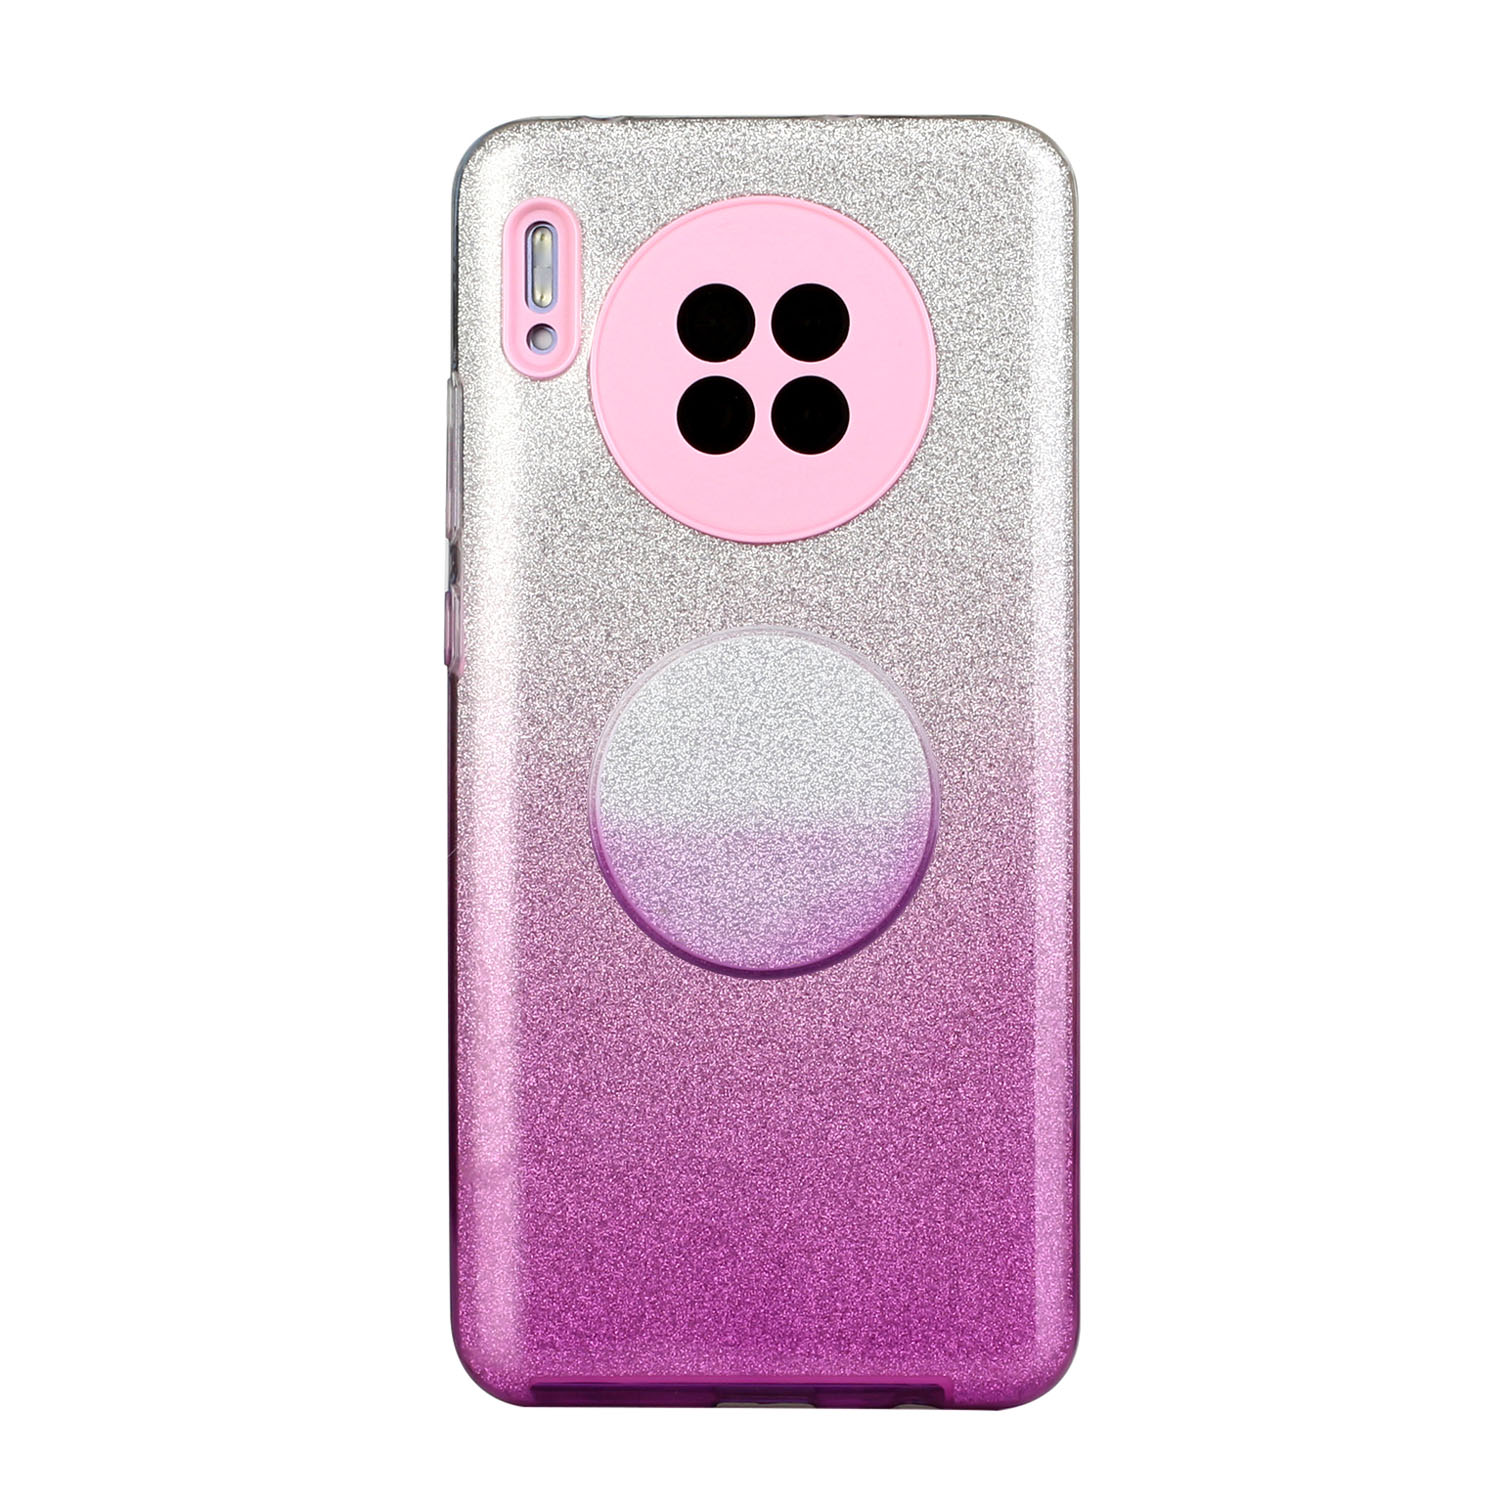 For HUAWEI Mate 30/Nova 5I pro/Mate 30 Pro/PSmart /Y5P/Y6P 2020 Phone Case Gradient Color Glitter Powder Phone Cover with Airbag Bracket purple